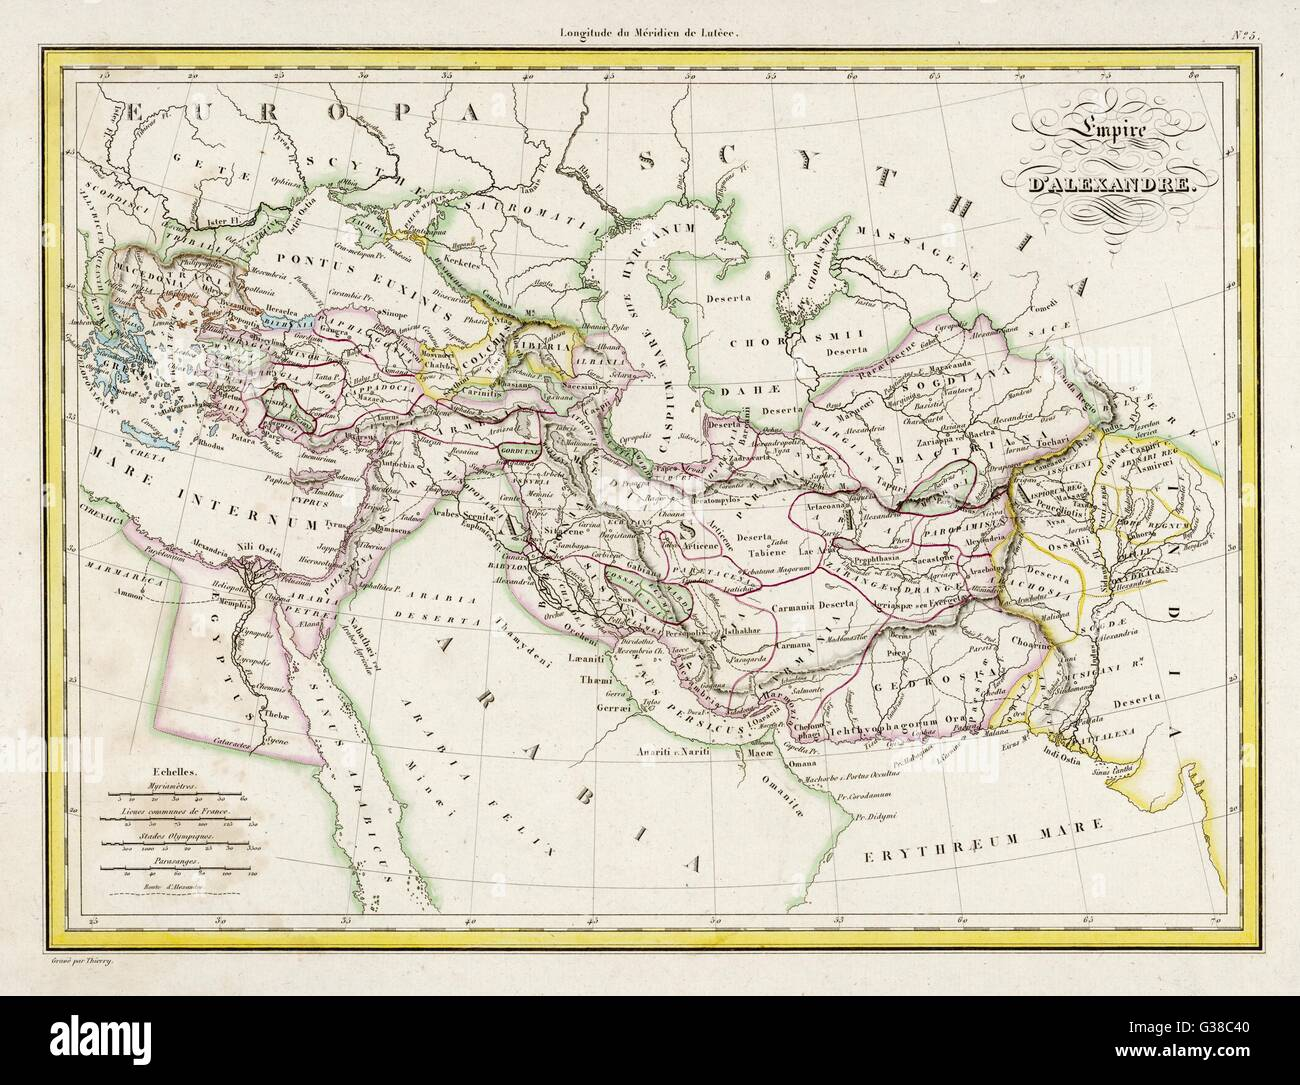 THE EMPIRE OF ALEXANDER         Date: 323 BC - Stock Image